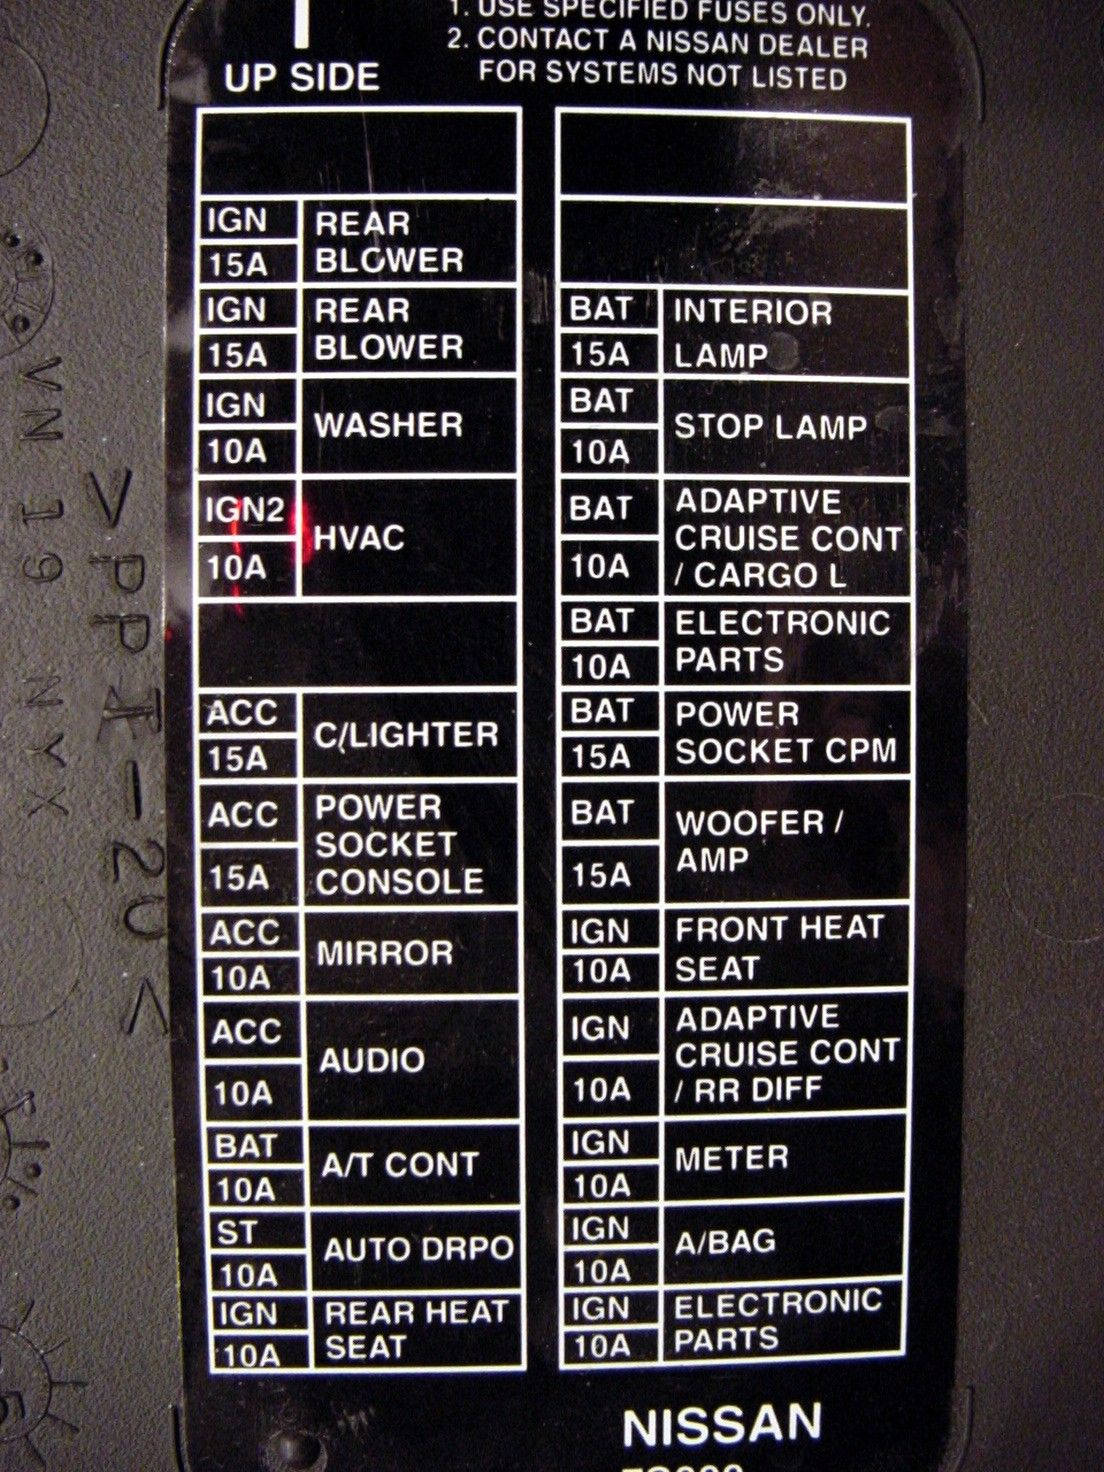 hight resolution of 2004 fuse diagram please help nissan titan forum rh titantalk com 2005 nissan pathfinder fuse box